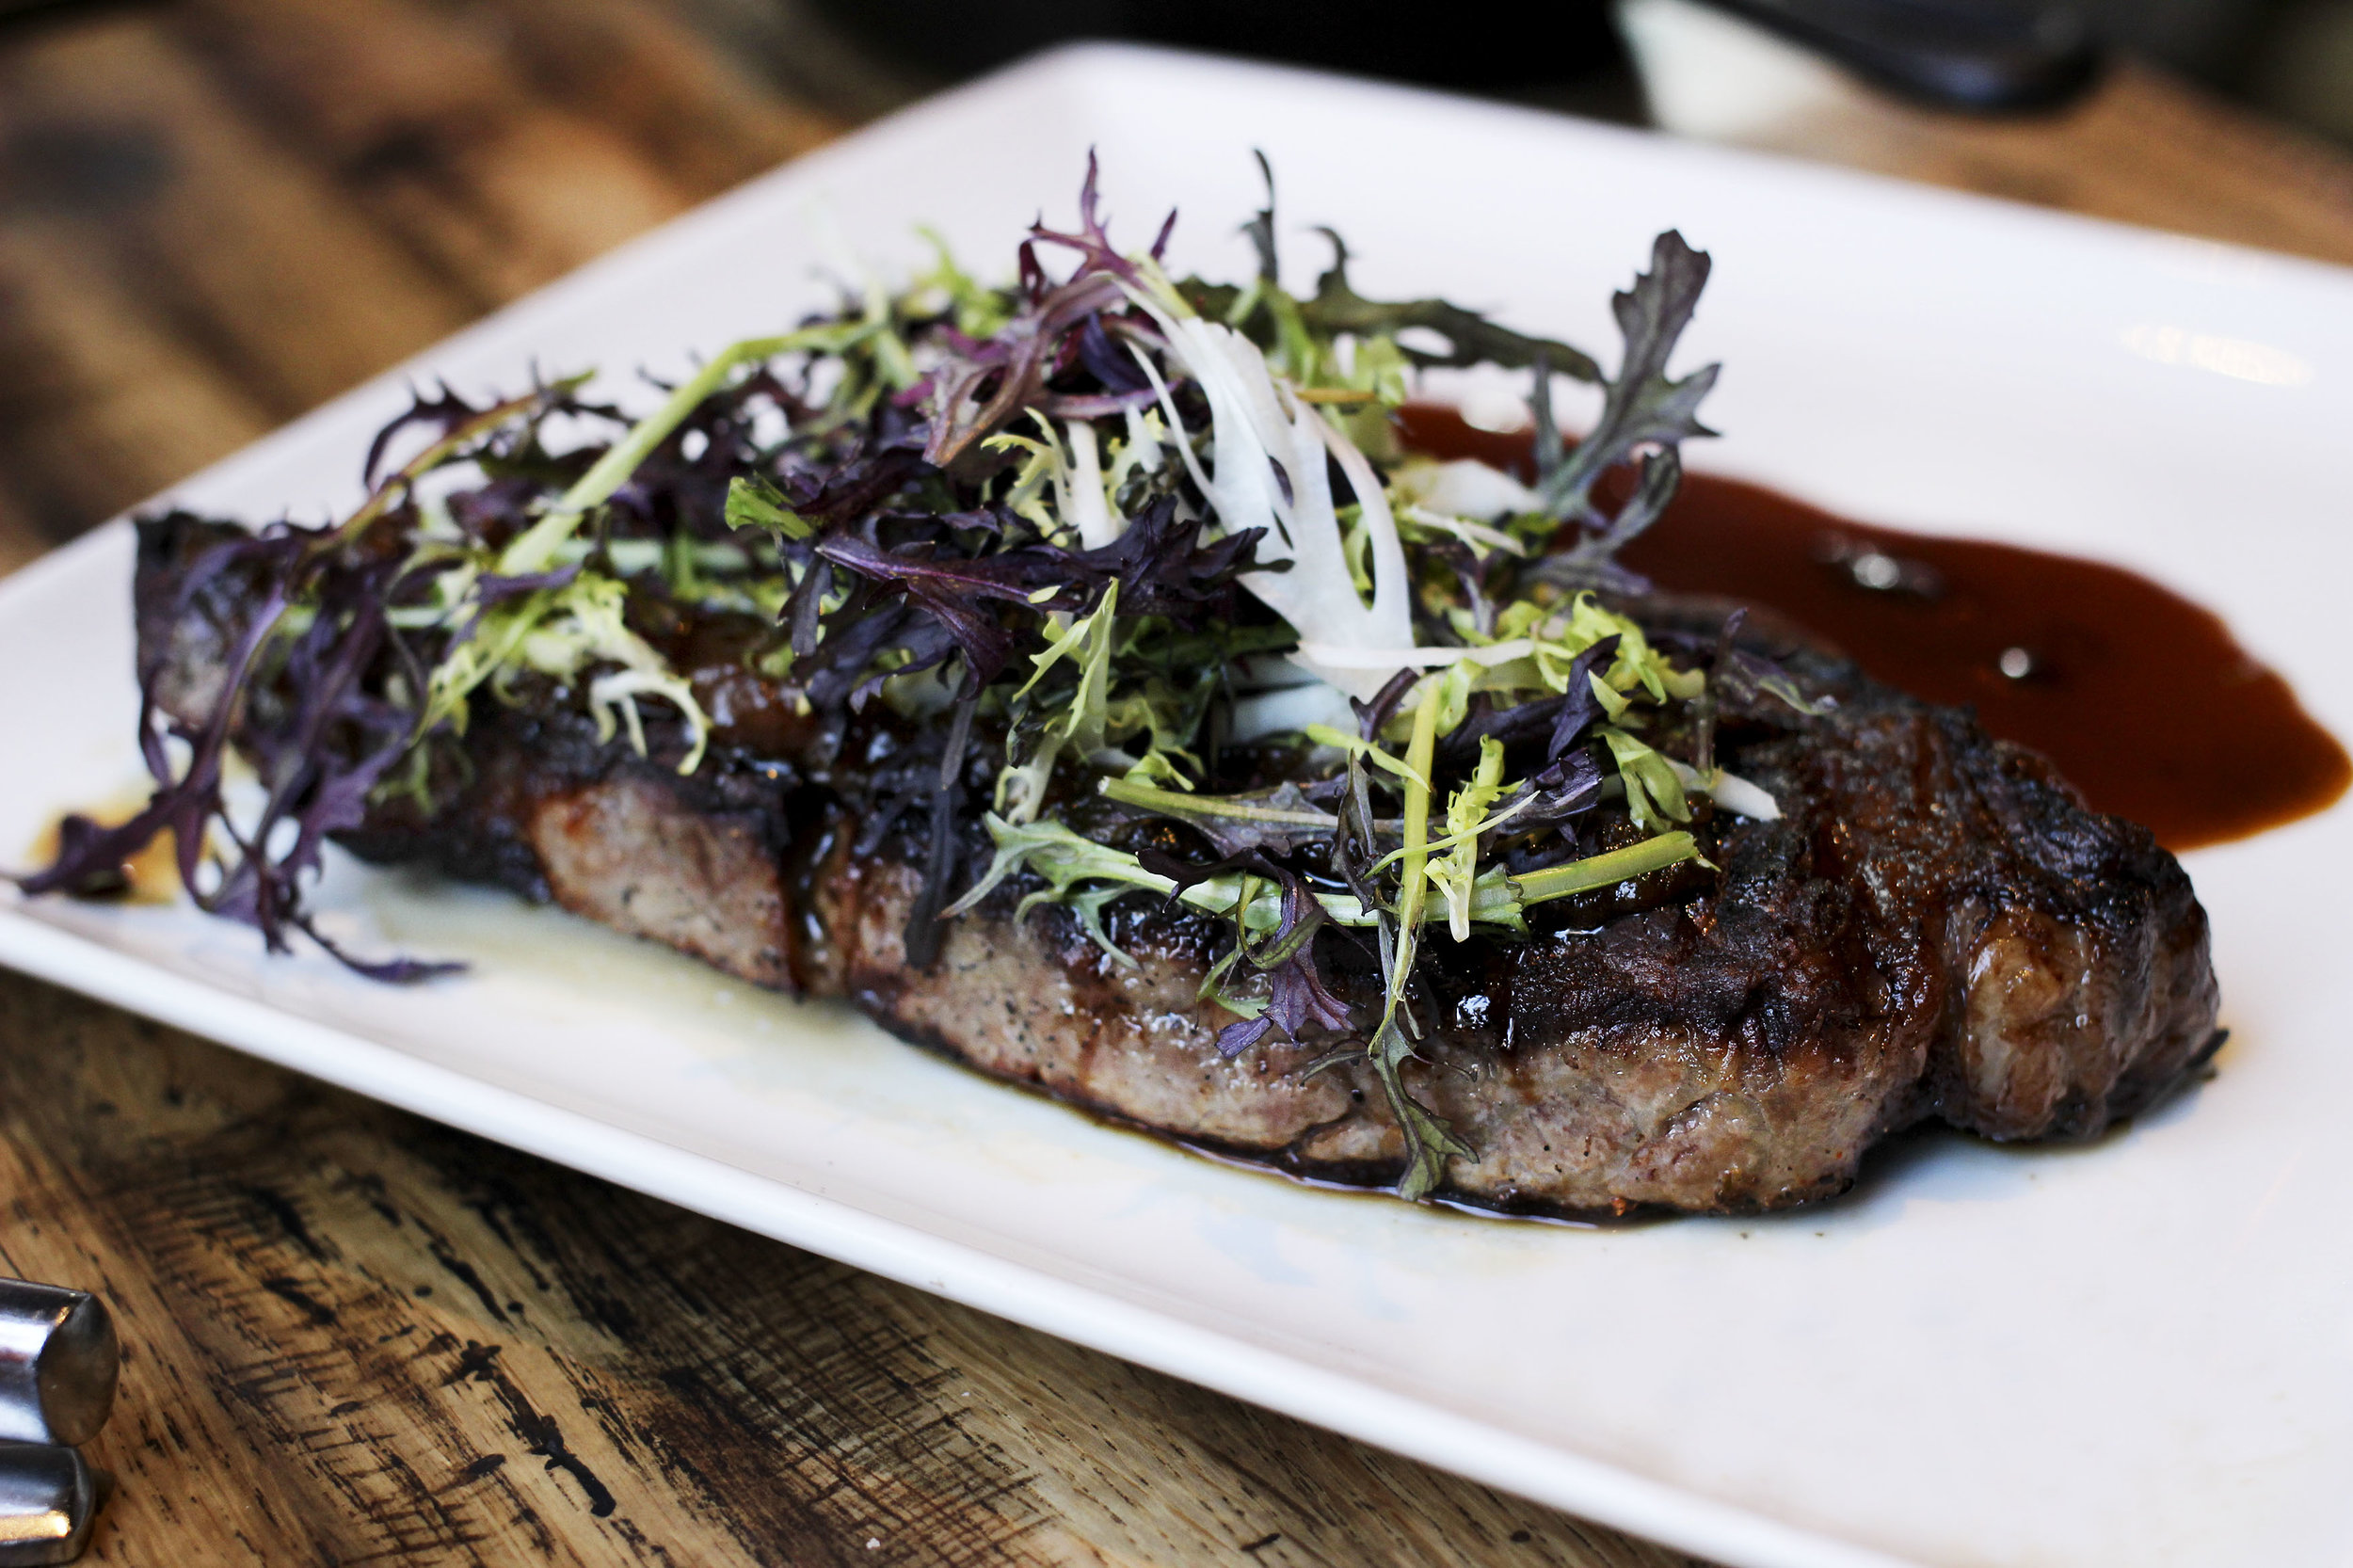 Prime NY Strip - 14 oz, charred onion-thyme jam, green peppercorn-cognac jus. Cooked Medium Rare.